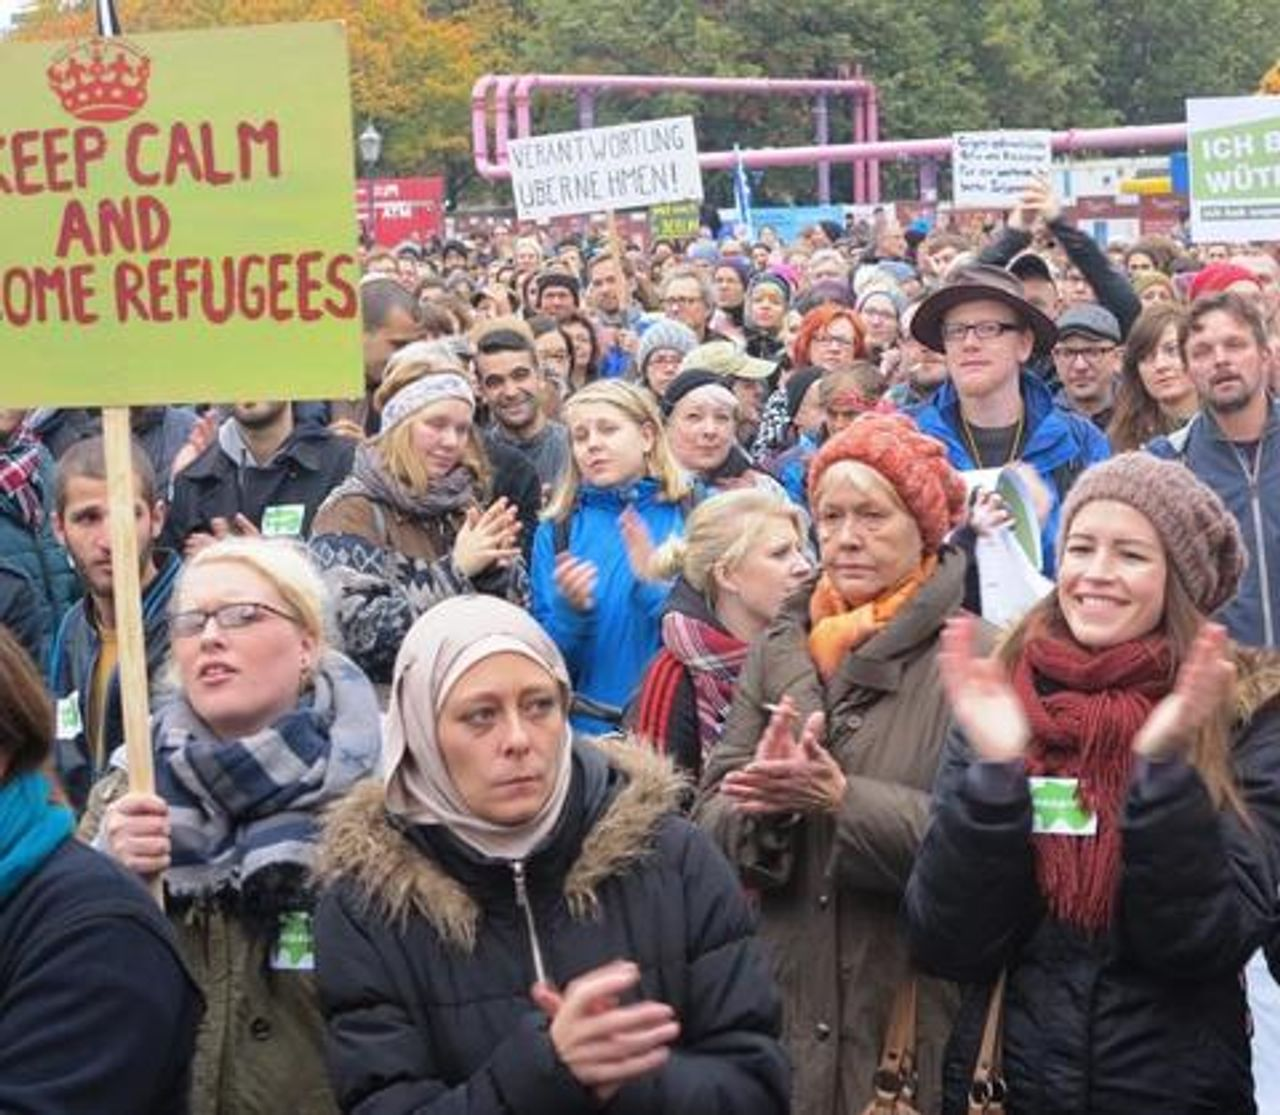 Pro-refugee demonstrators in Berlin